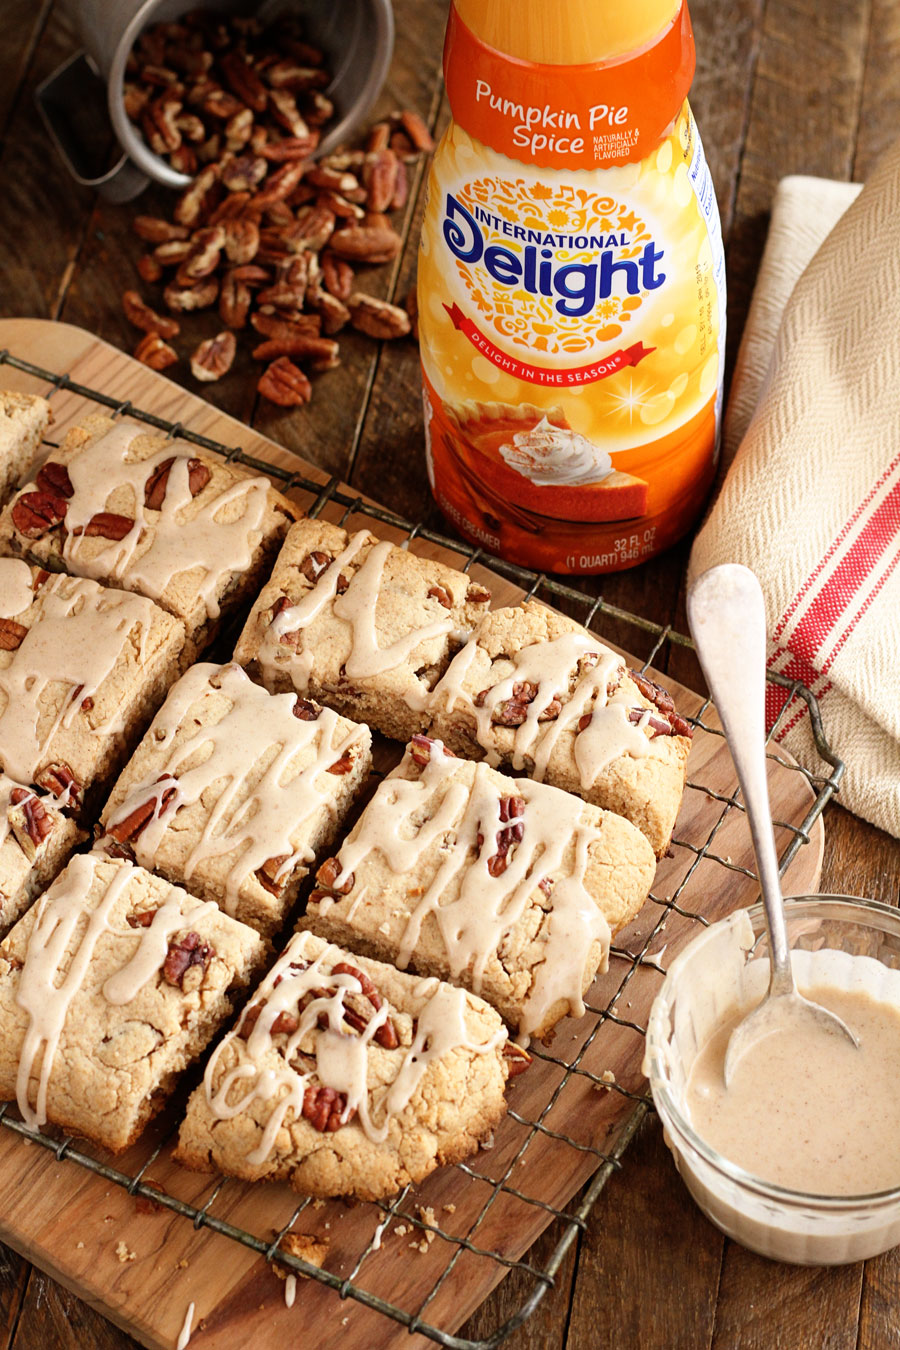 Pumpkin Pie Spice Pull Apart Biscuits with glaze on top